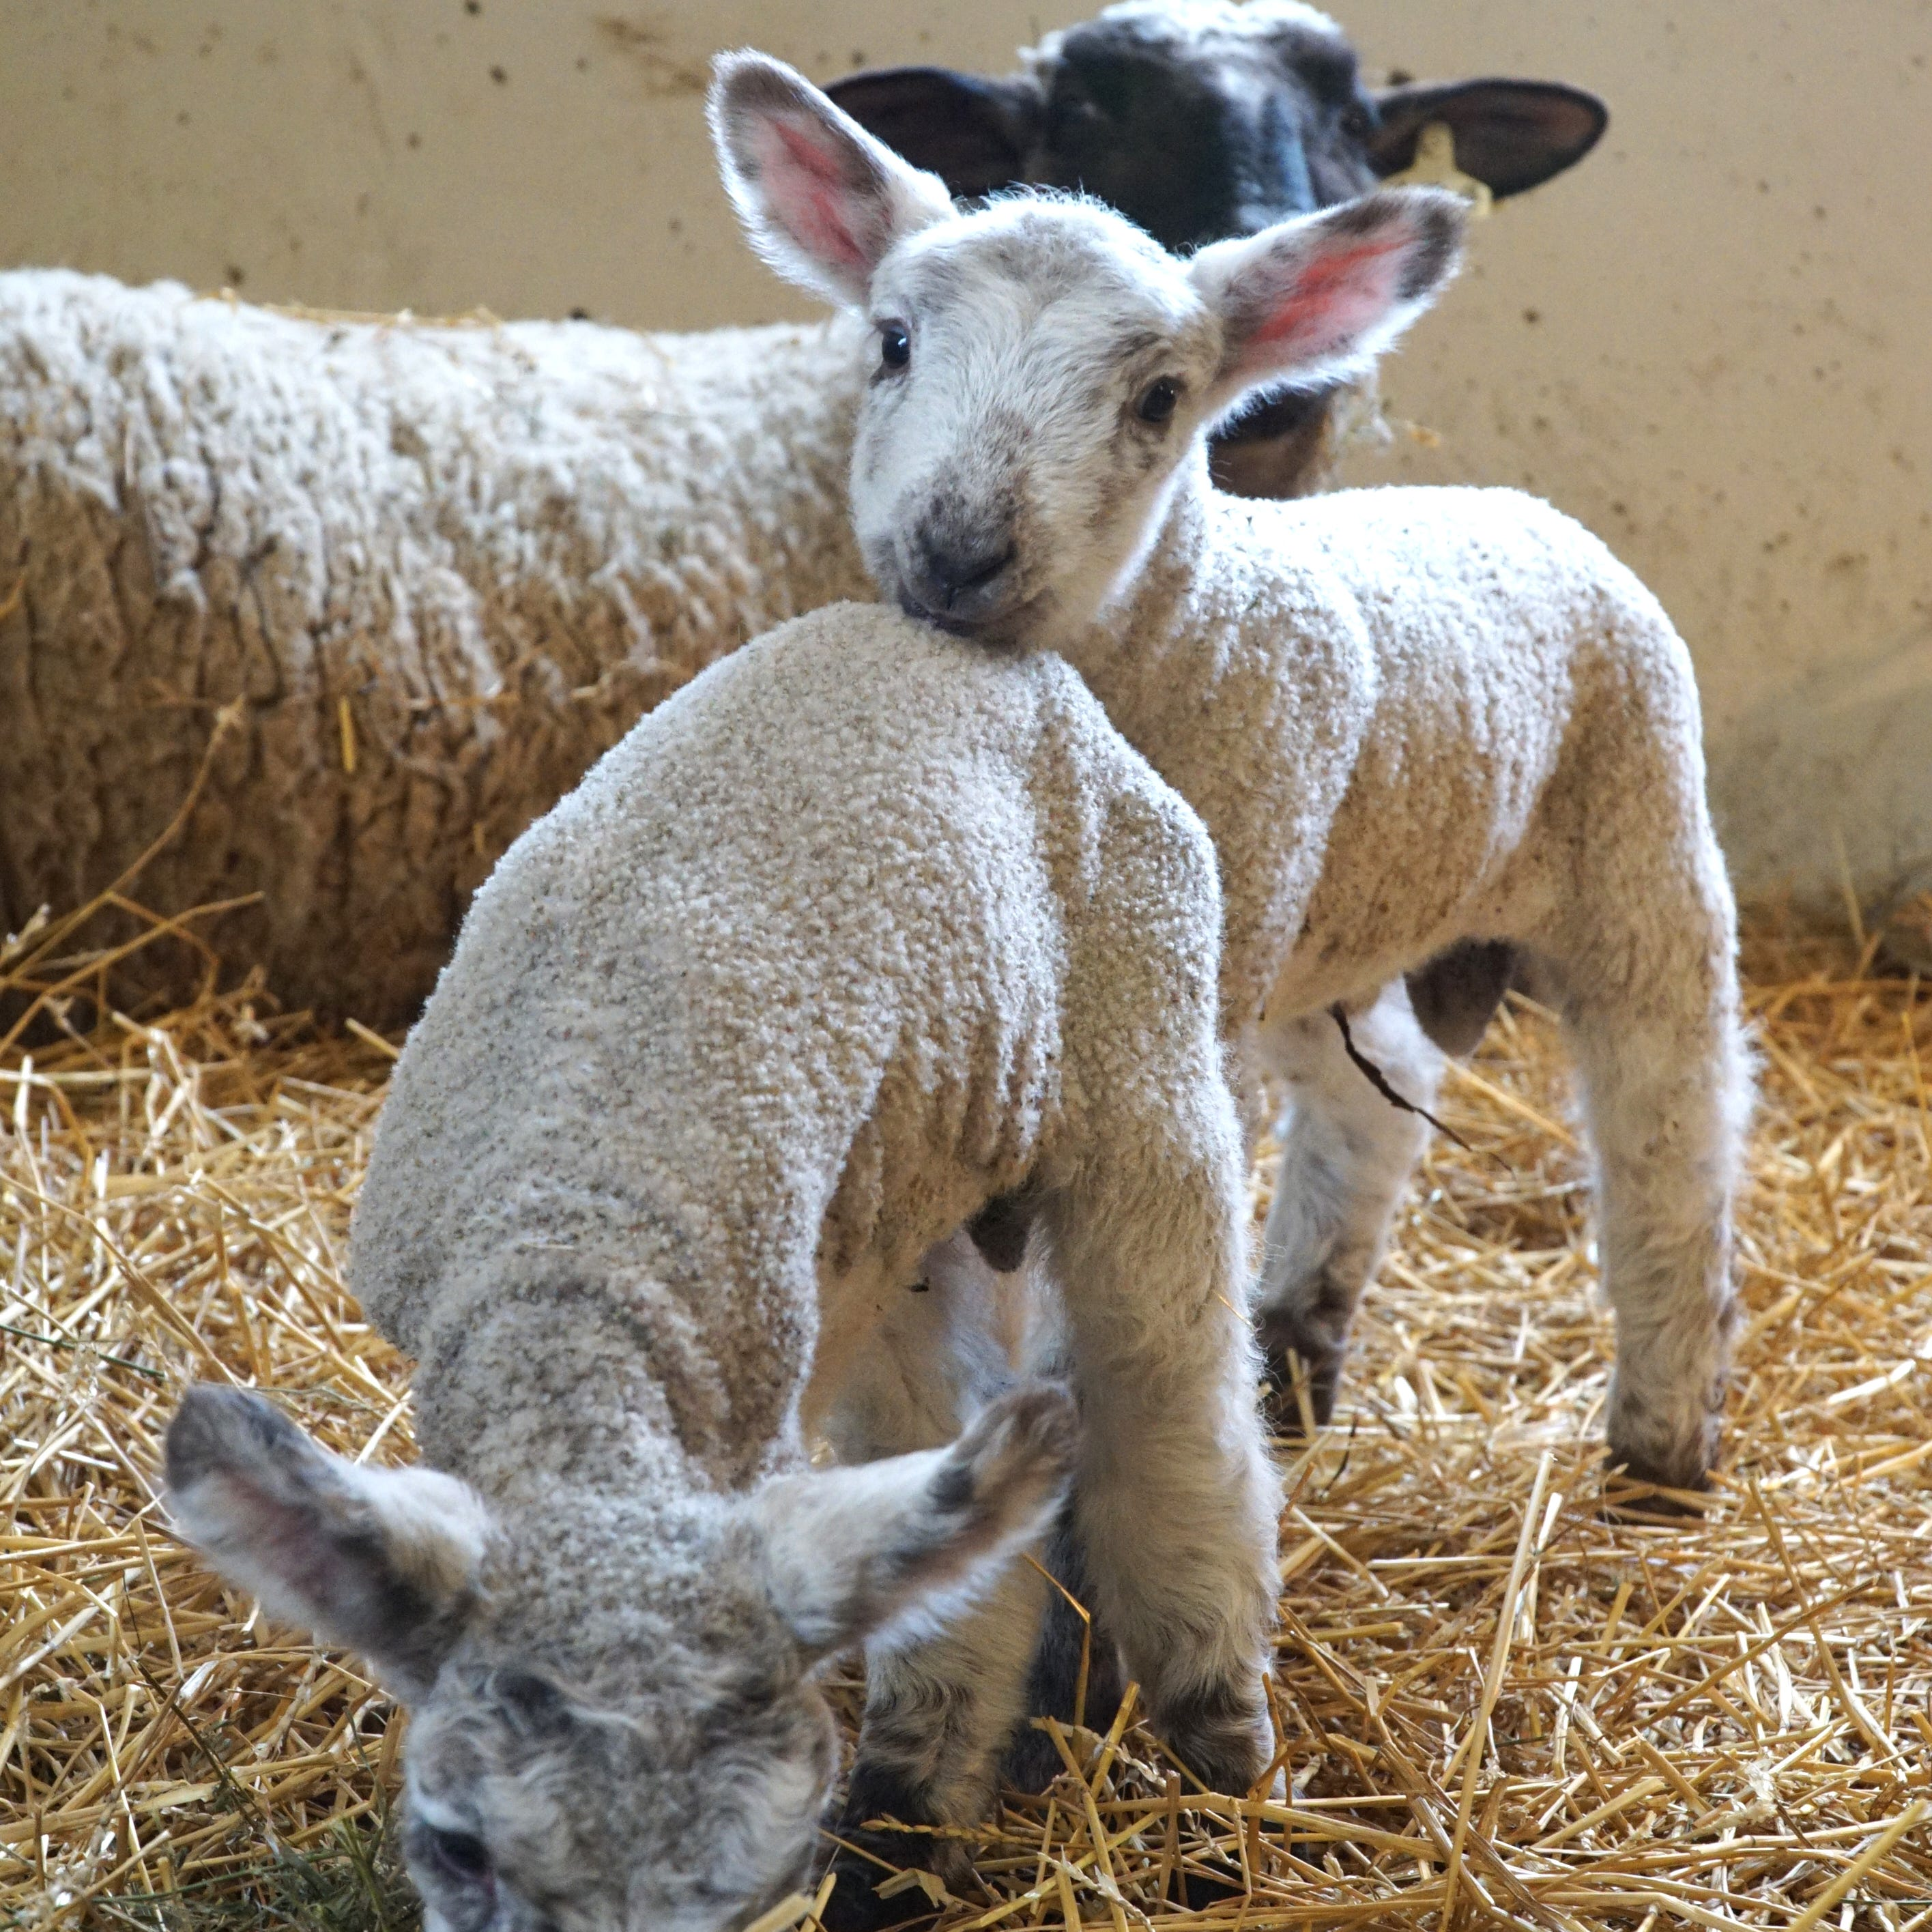 These newest additions at the Kensington Farm Center will brighten your day